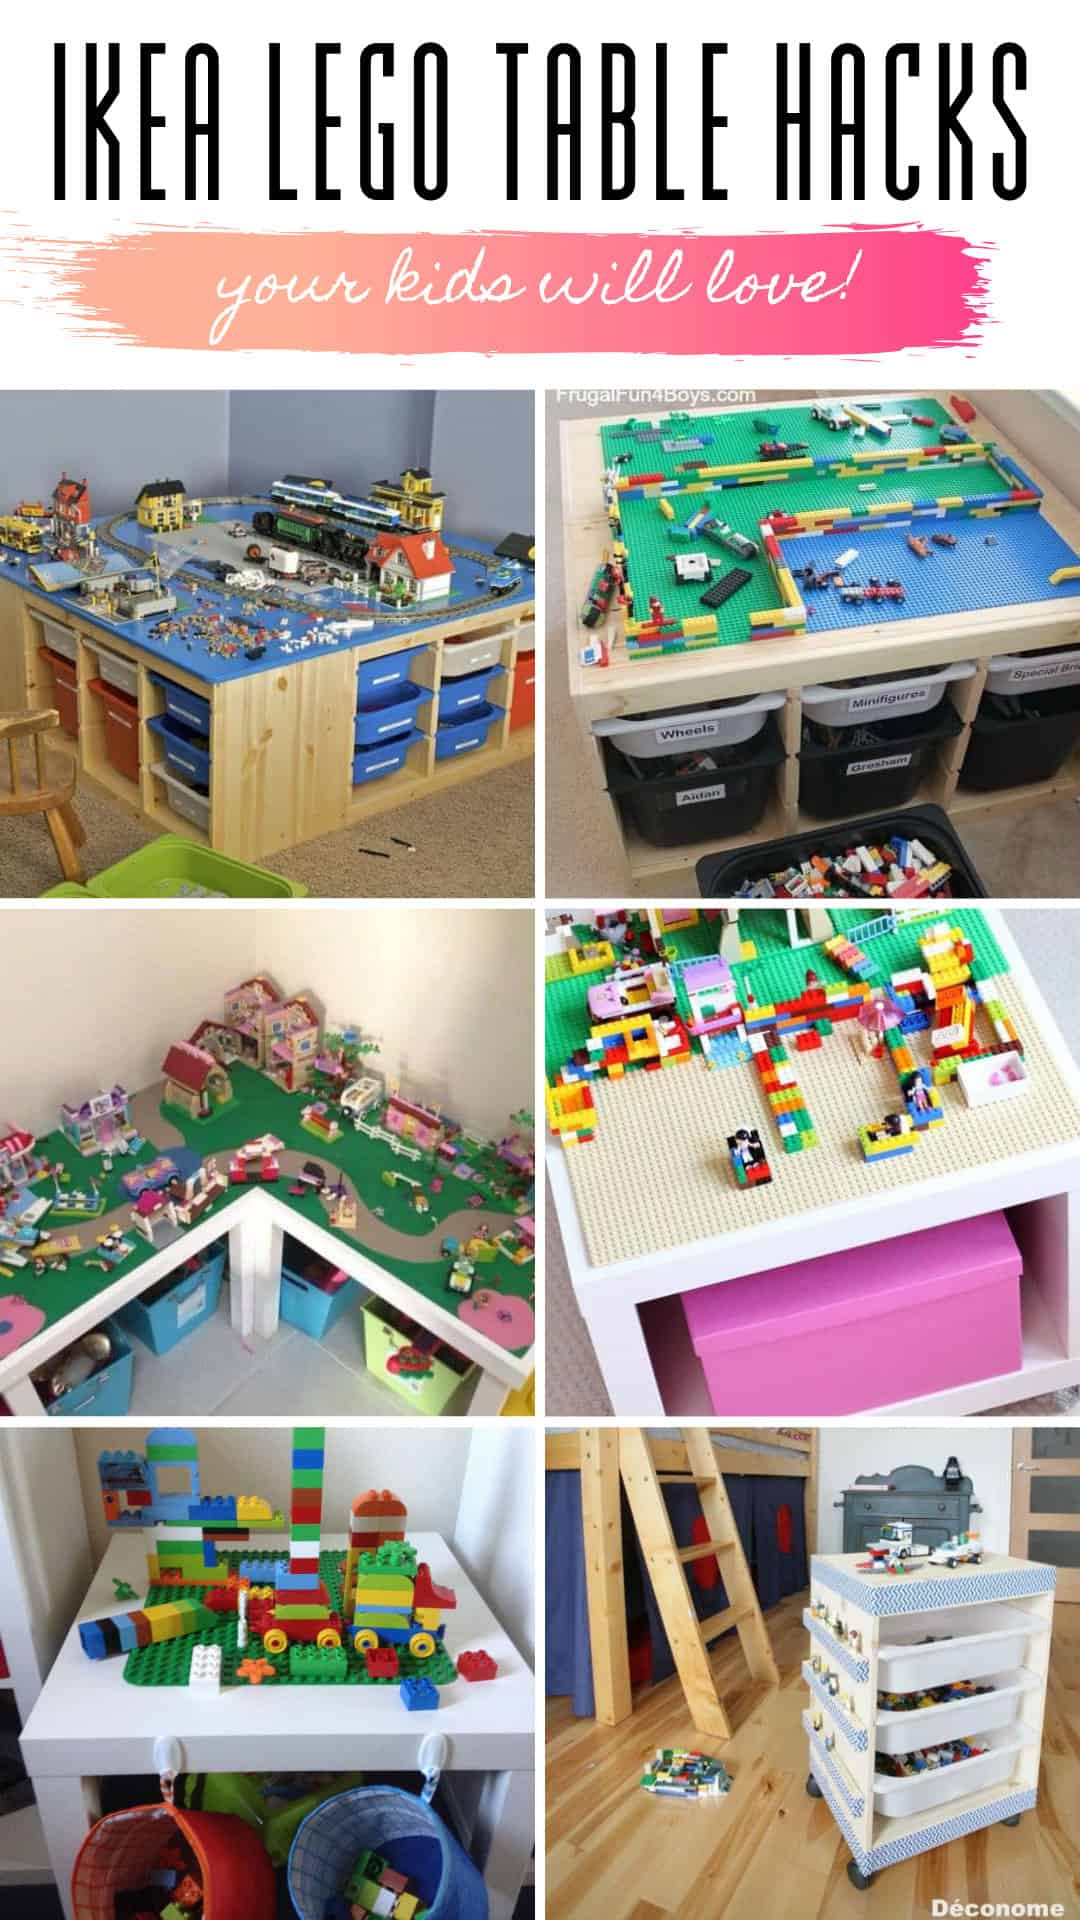 These IKEA LEGO table hacks for kids are insanely useful and so easy to make! #LEGO #IKEA